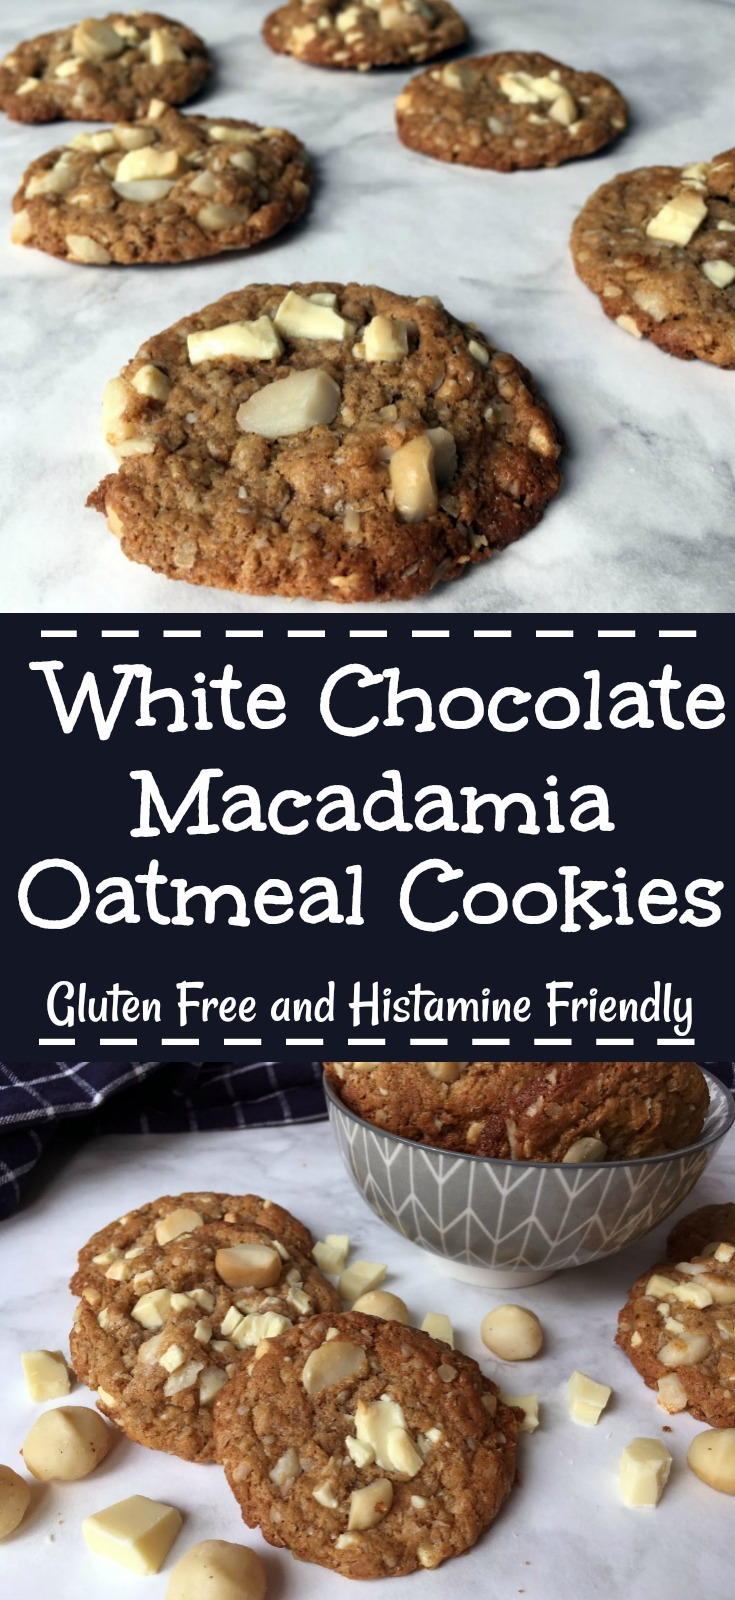 White Chocolate Macadamia Oatmeal Cookies - Pin Me!